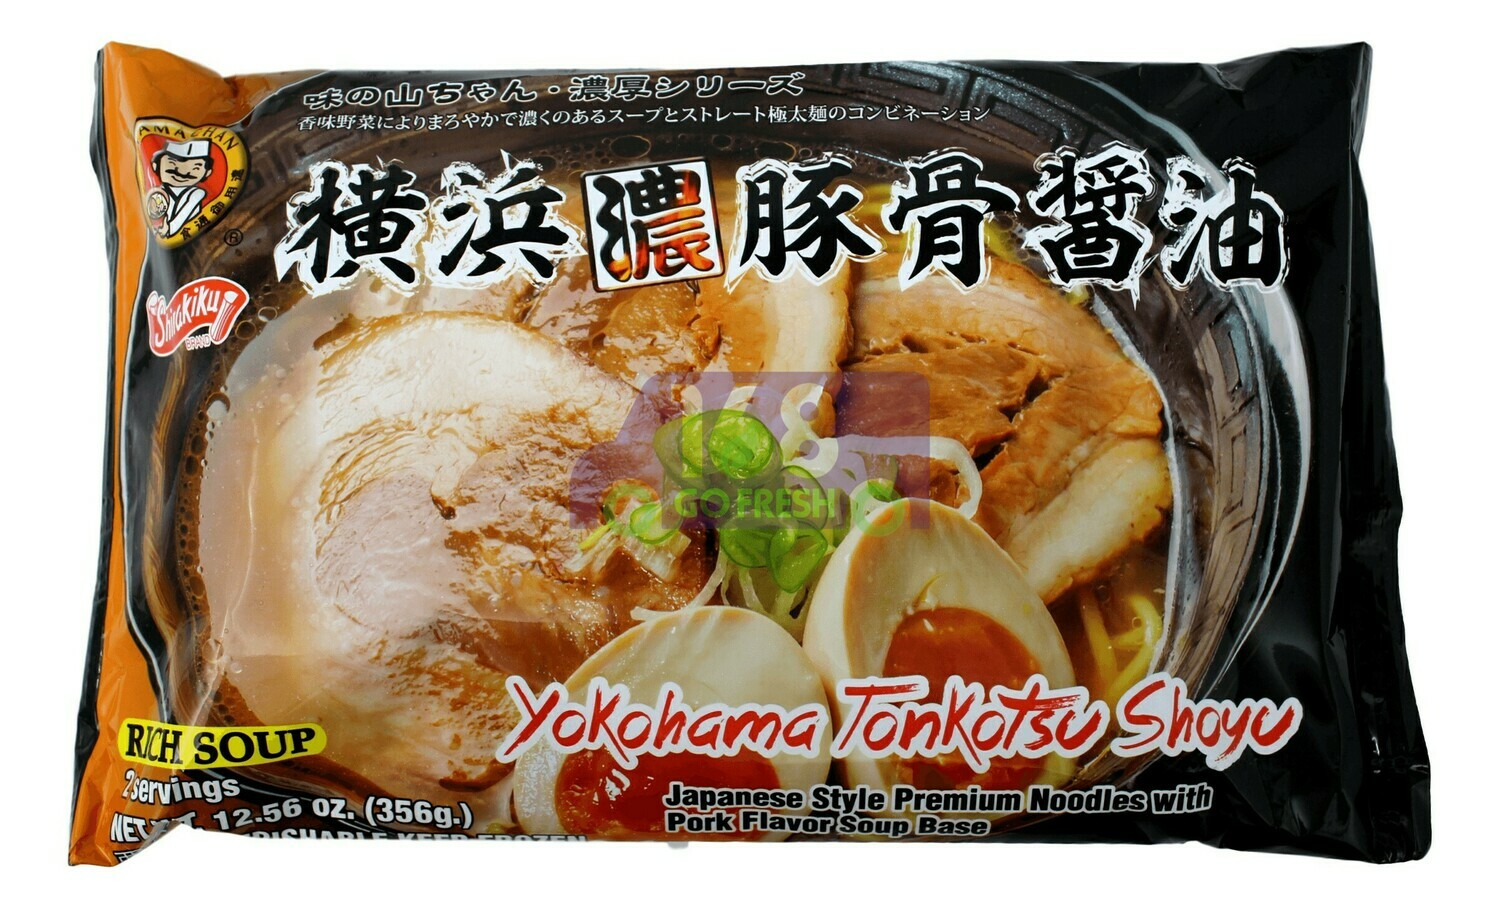 JAPANESE STYLE PREMIUM NOODLES WITH PORK FLAVOR SOUP BASE 日本 横滨浓豚骨酱油面(12.56OZ)